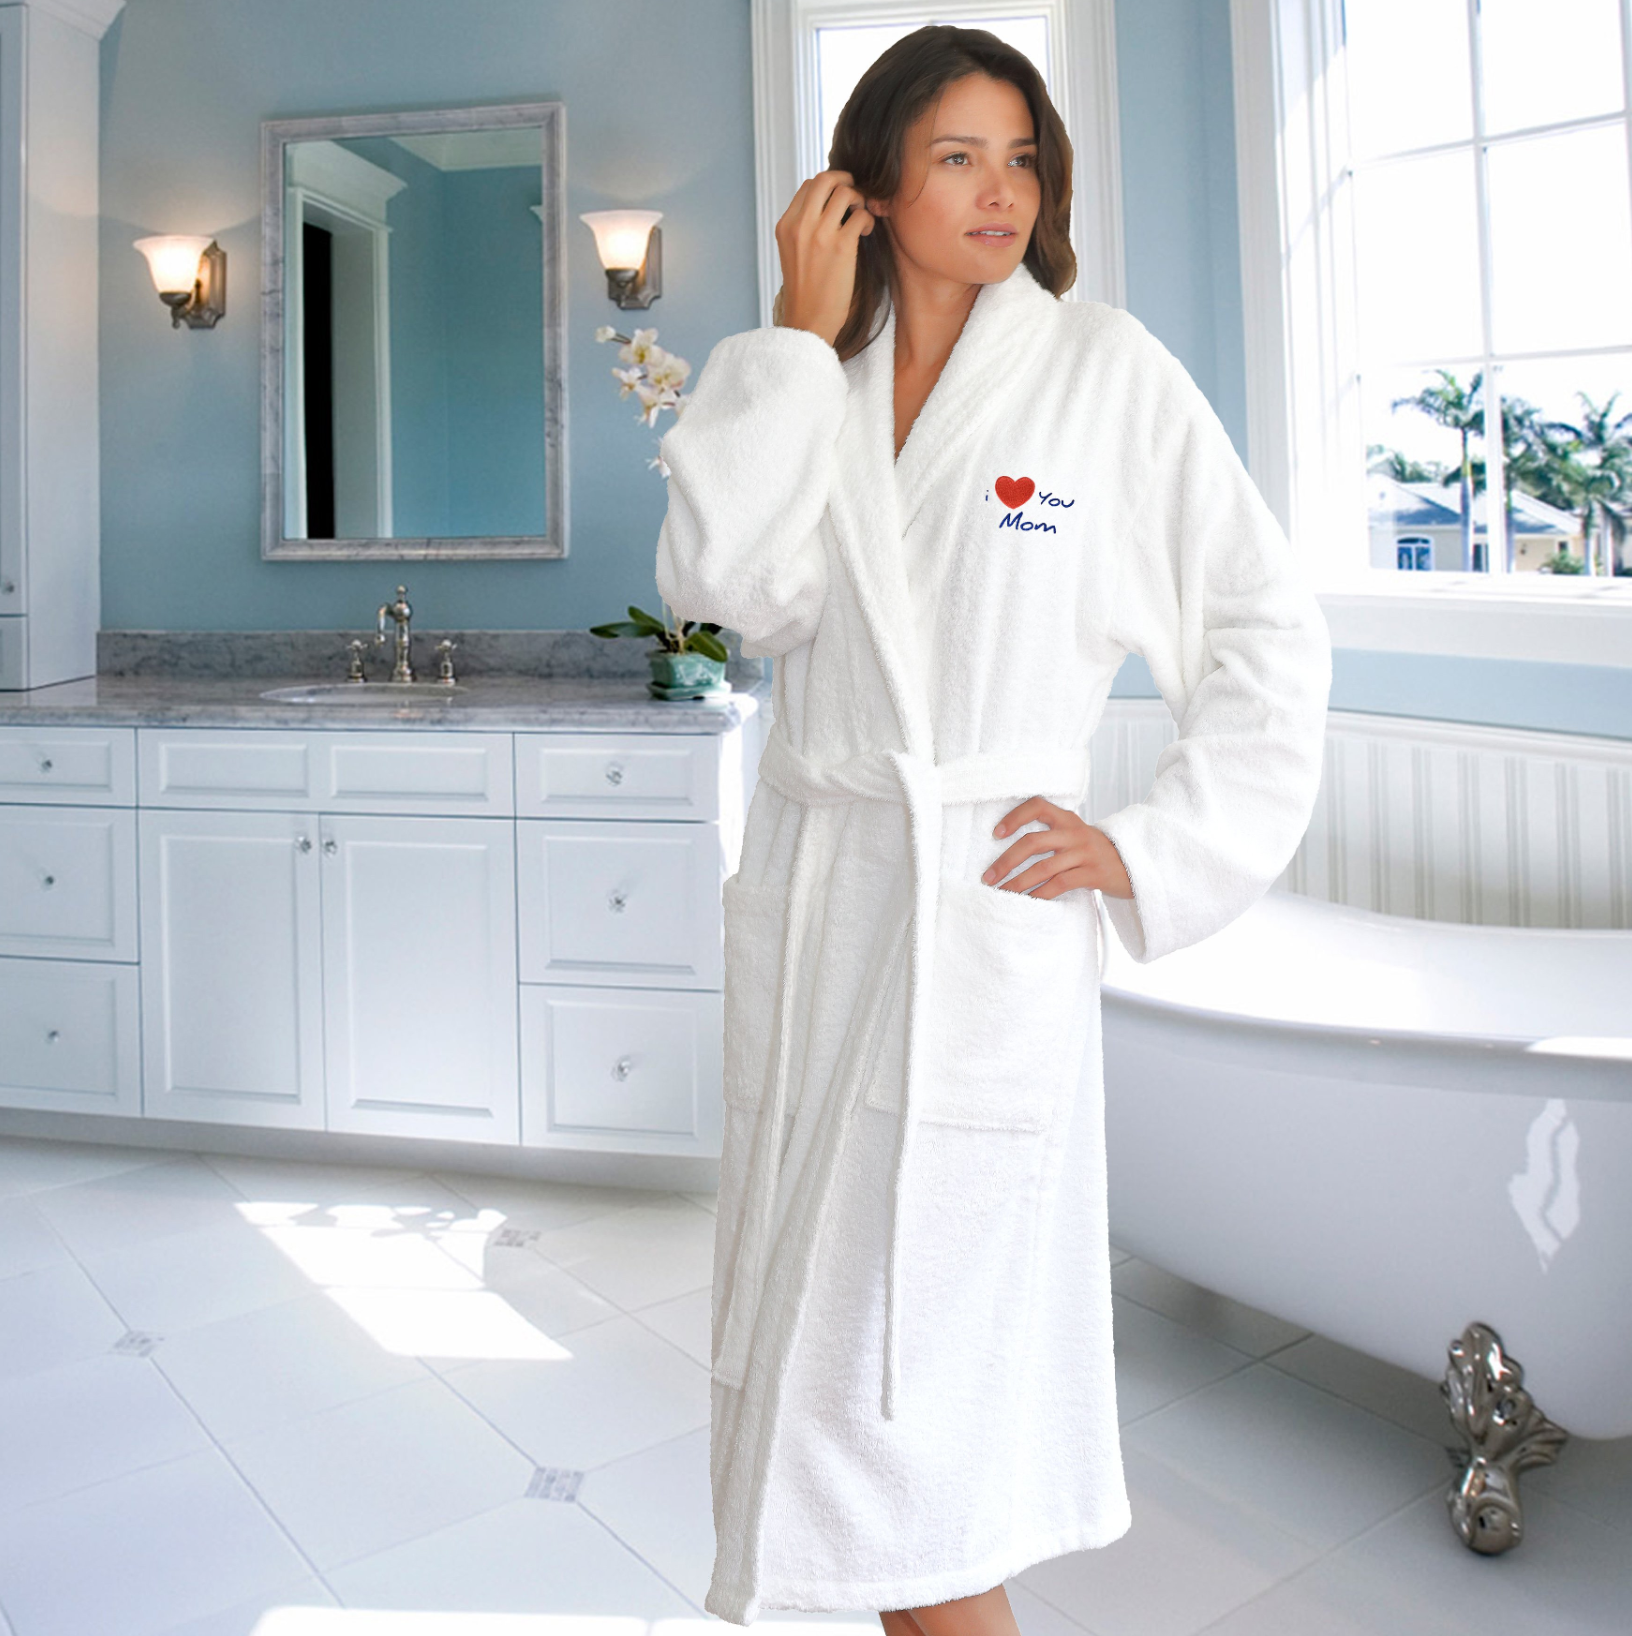 Great gift idea for Mother's Day: I Love You Mom Embroidered Terry Bathrobe!